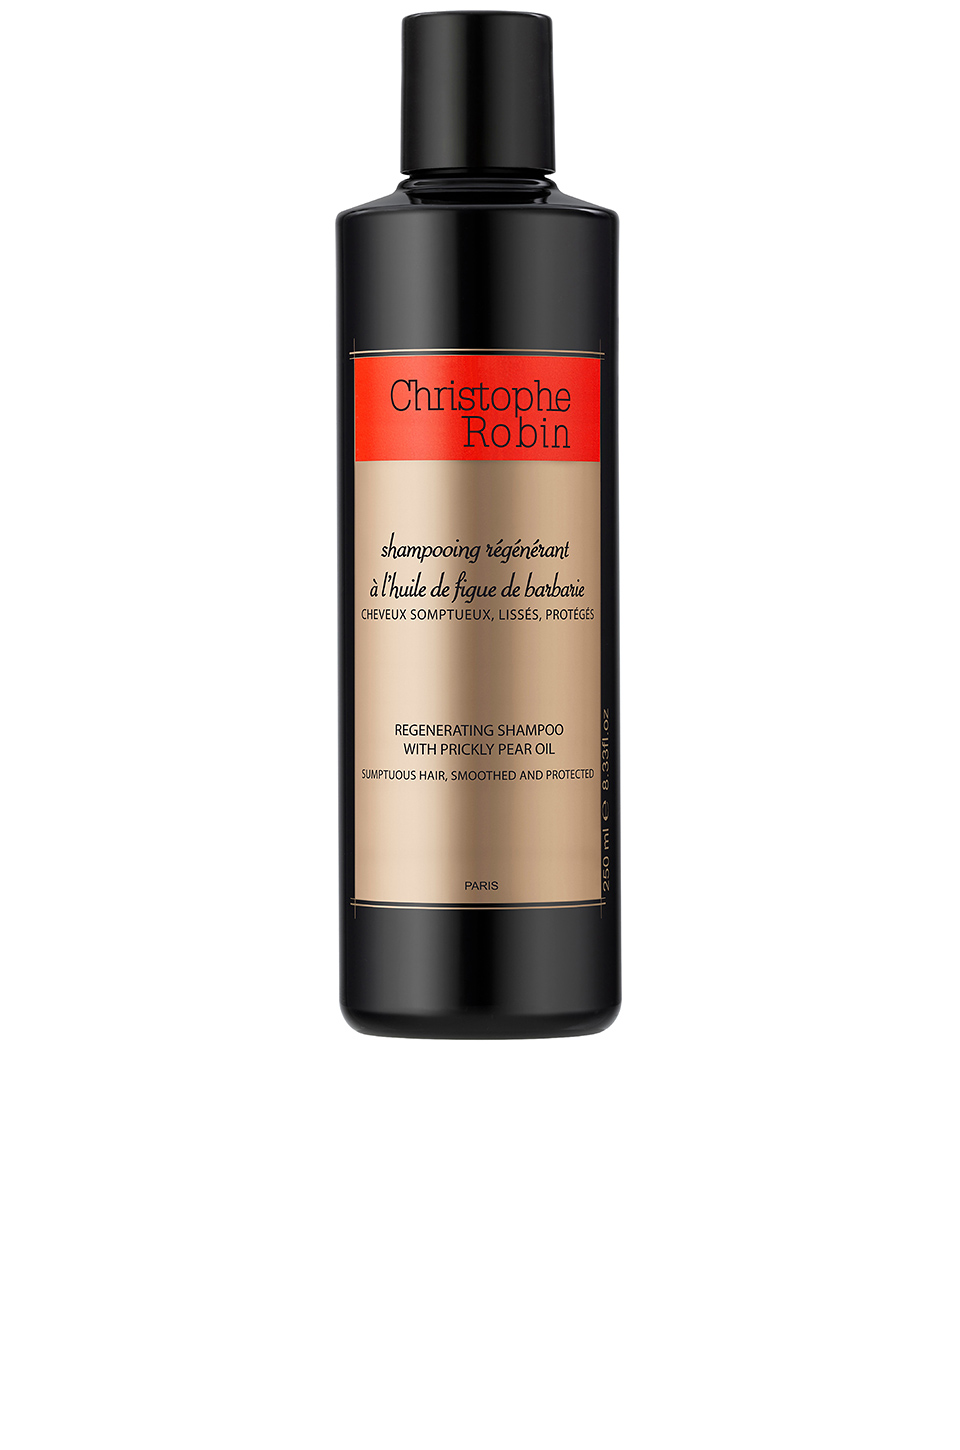 Christophe Robin Regenerating Shampoo with Prickly Pear Oil in